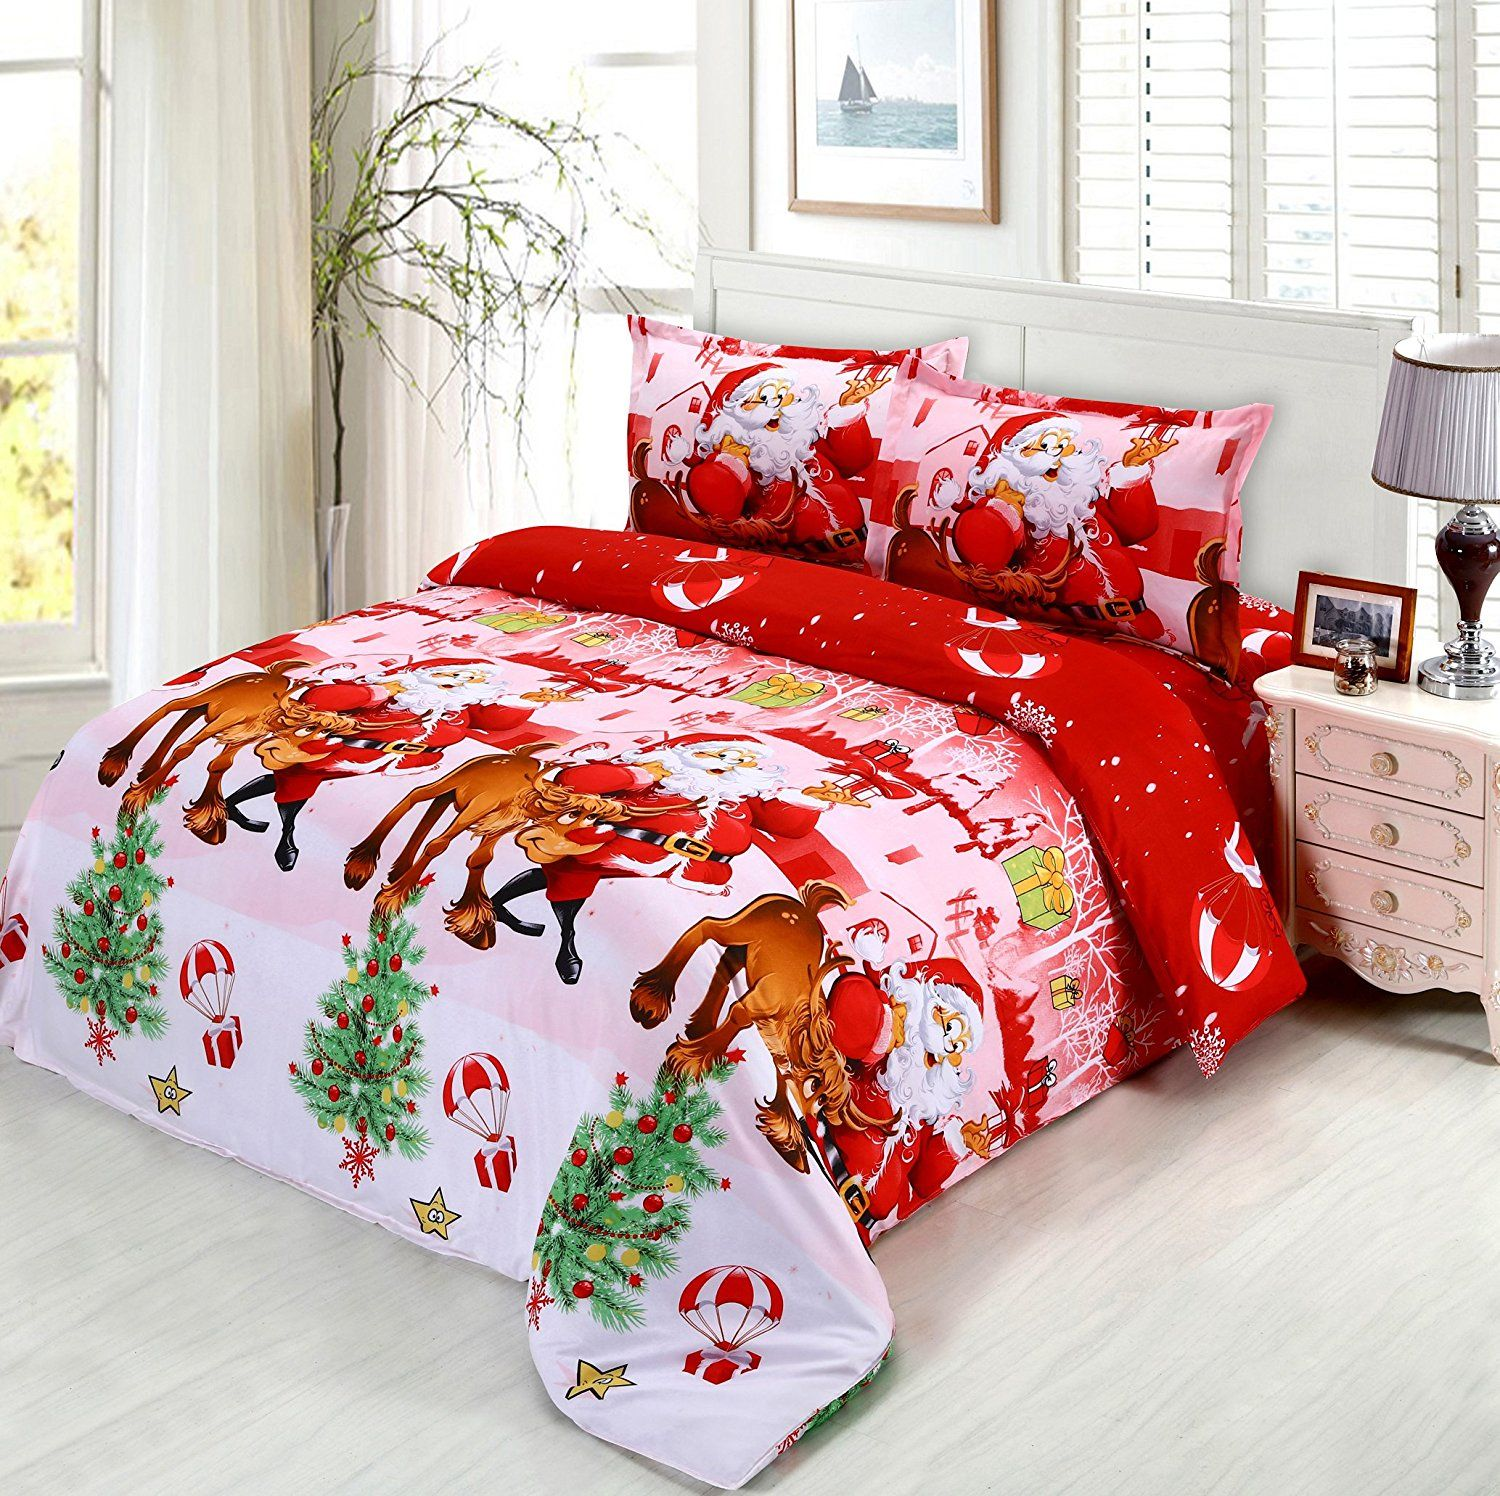 Christmas bedding collections for both adults and kids | Rock Your ...